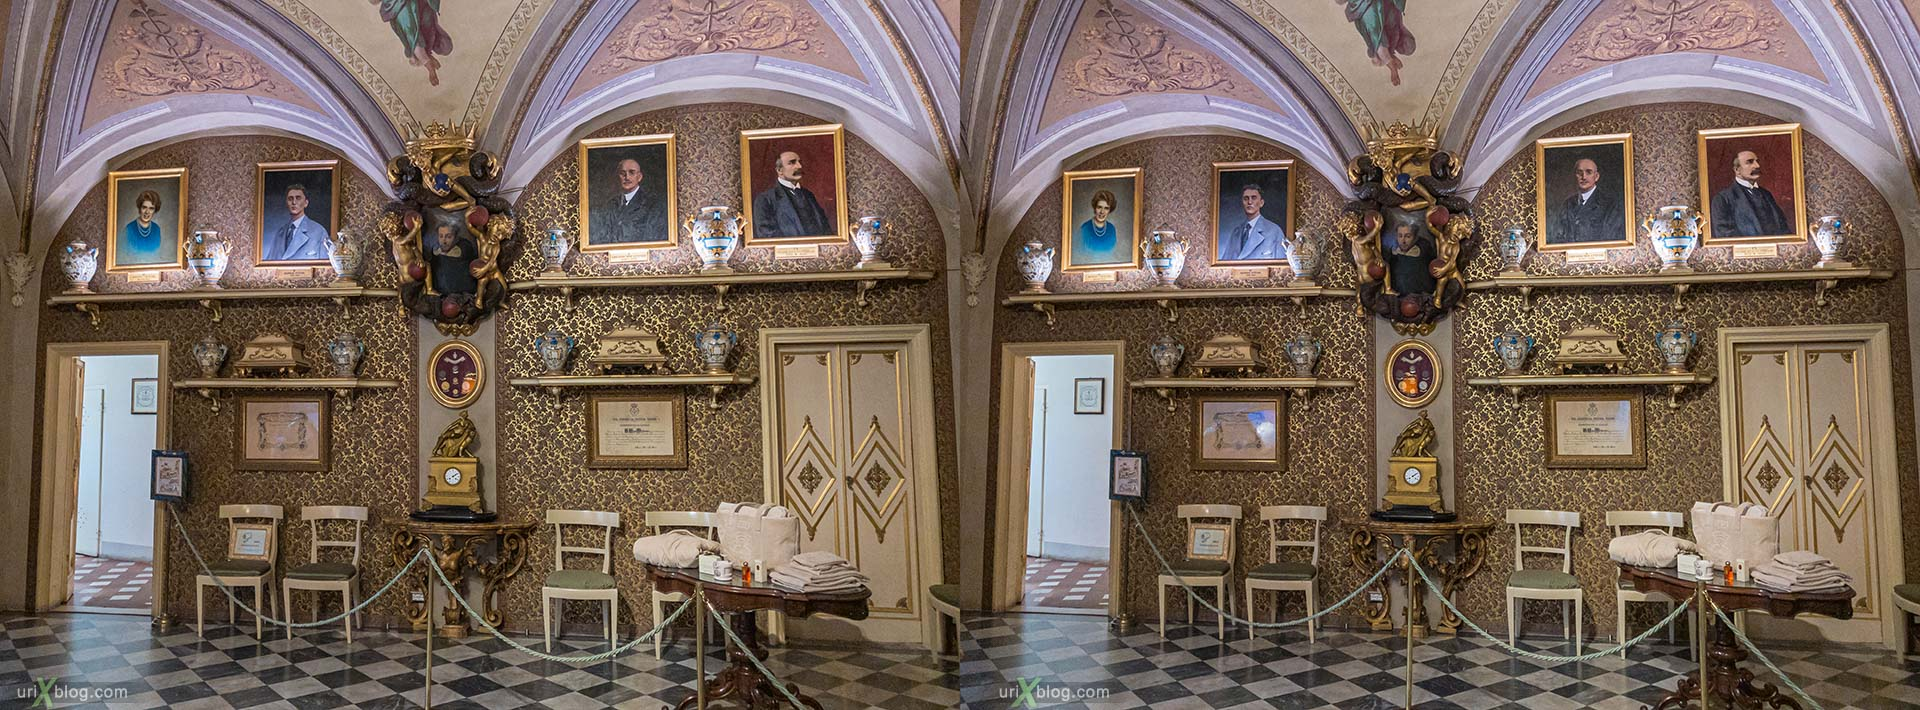 Santa Maria Novella, pharmacy, Florence, Firenze, Italy, 3D, stereo pair, cross-eyed, crossview, cross view stereo pair, stereoscopic